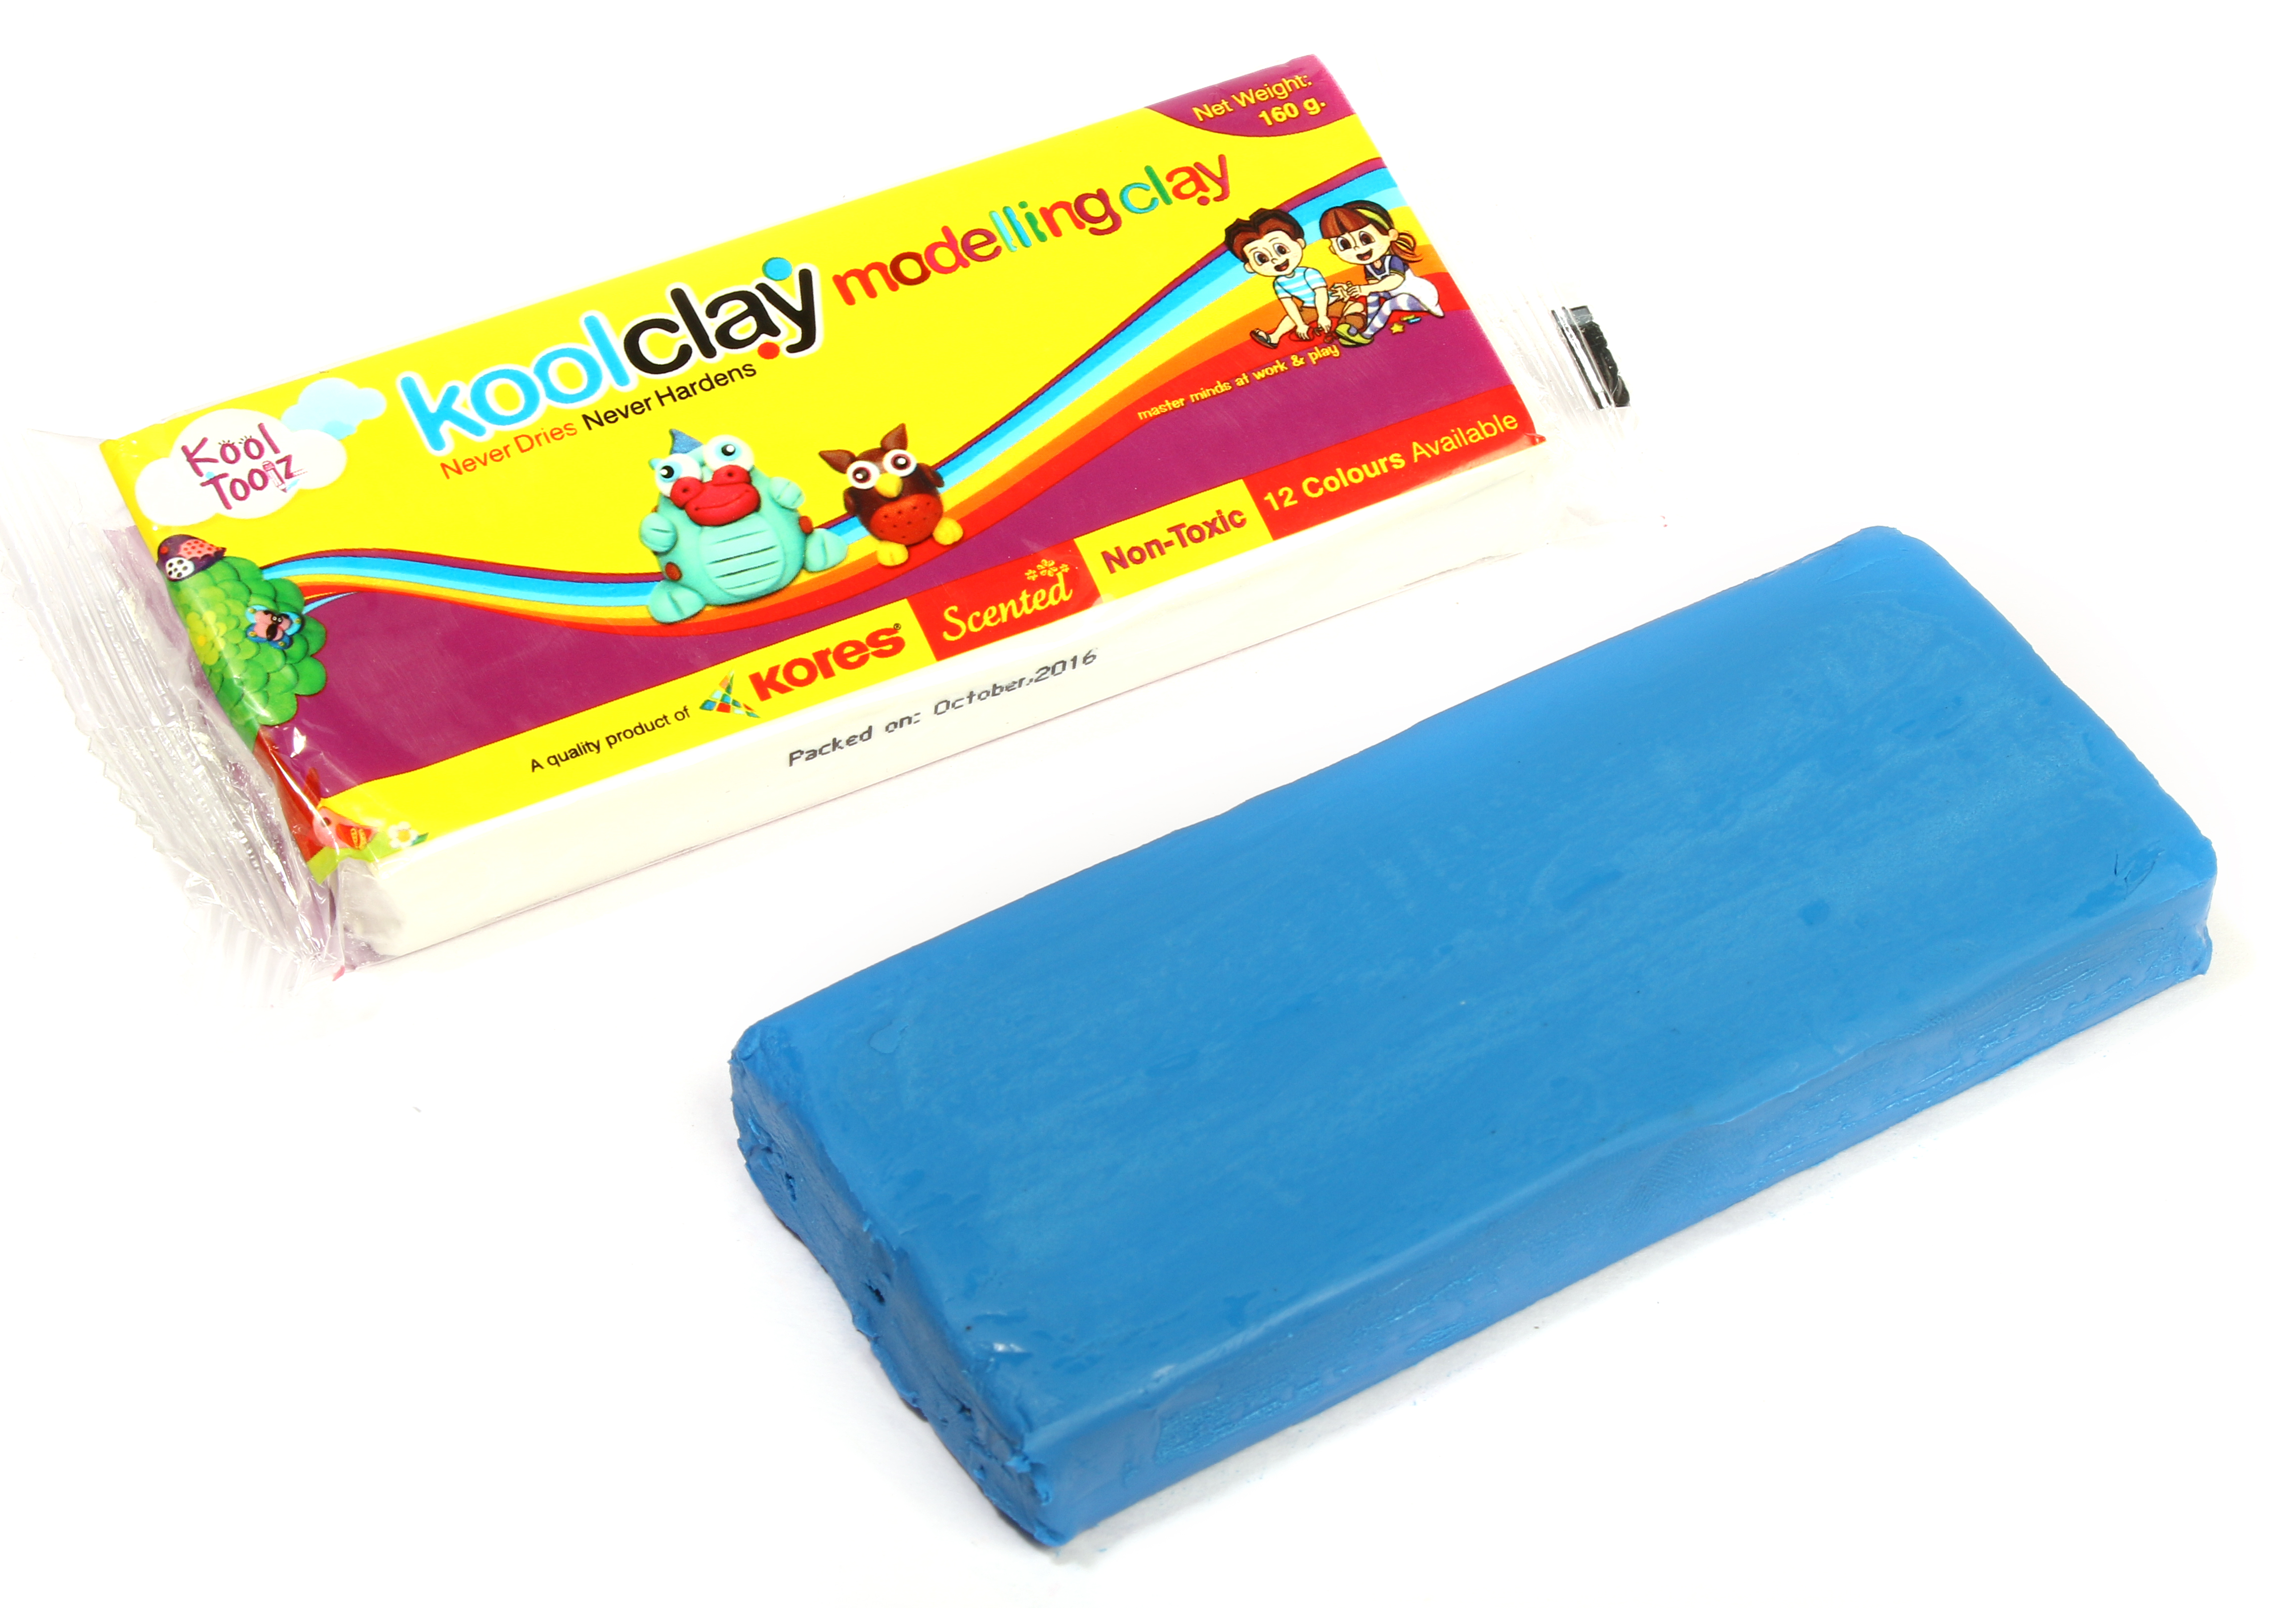 Kool Clay single colour